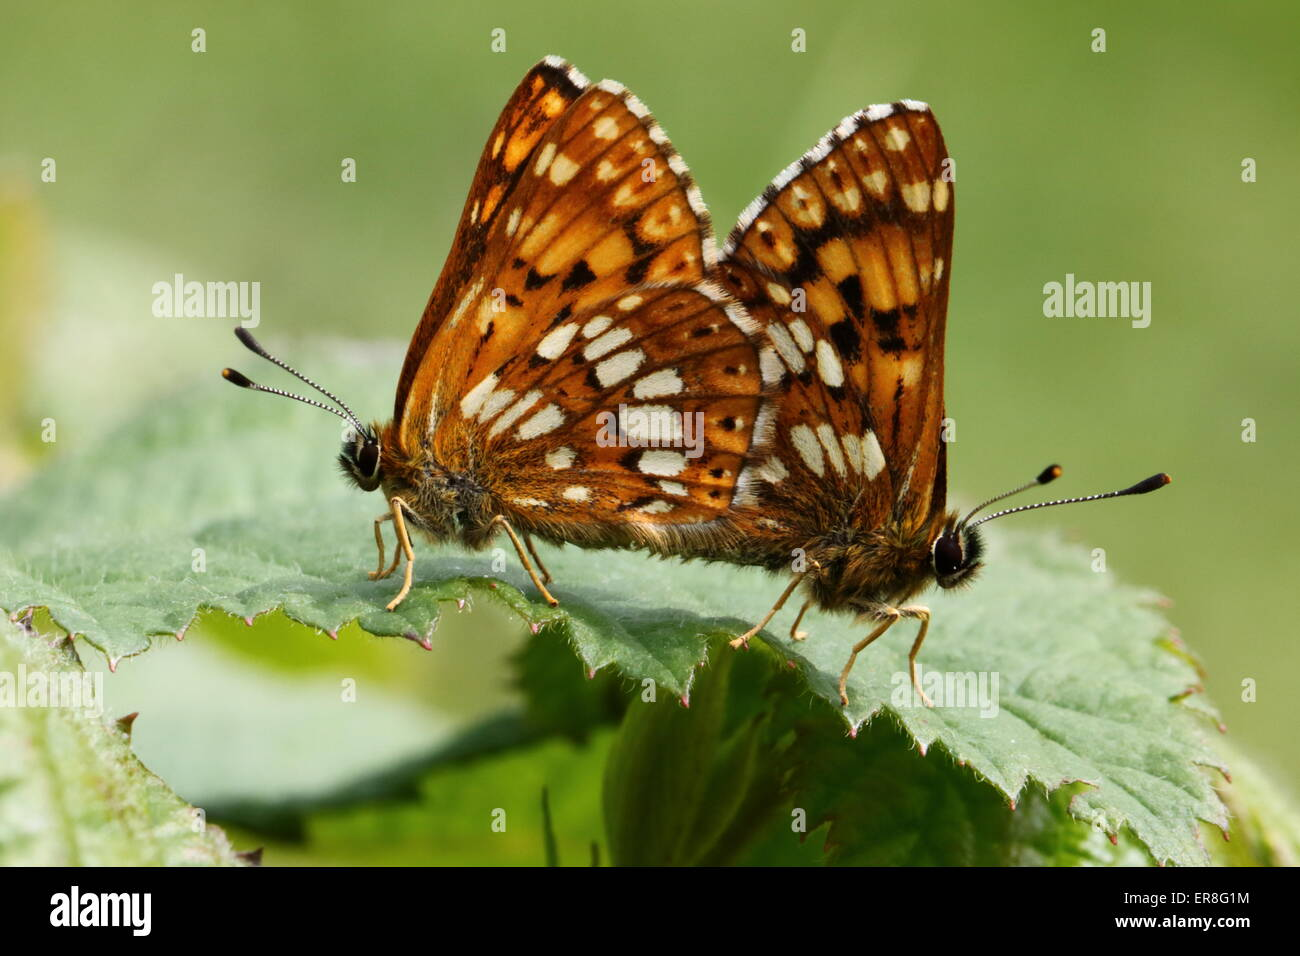 Mating (pairing) Duke of Burgundy Butterflies - Stock Image